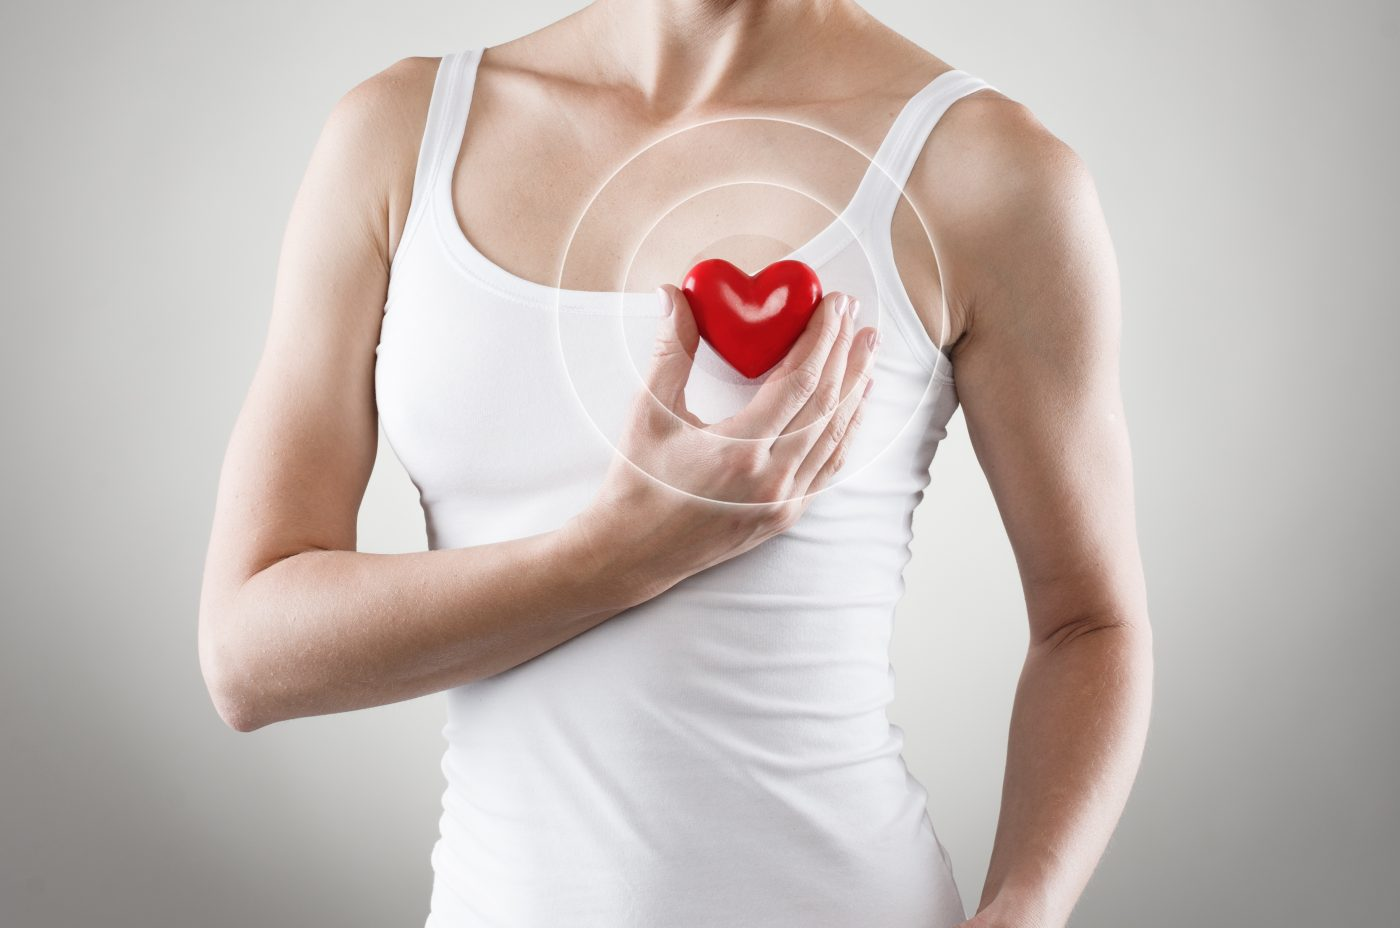 Heart Rate Is More Variable in Fibromyalgia Patients, Study Finds